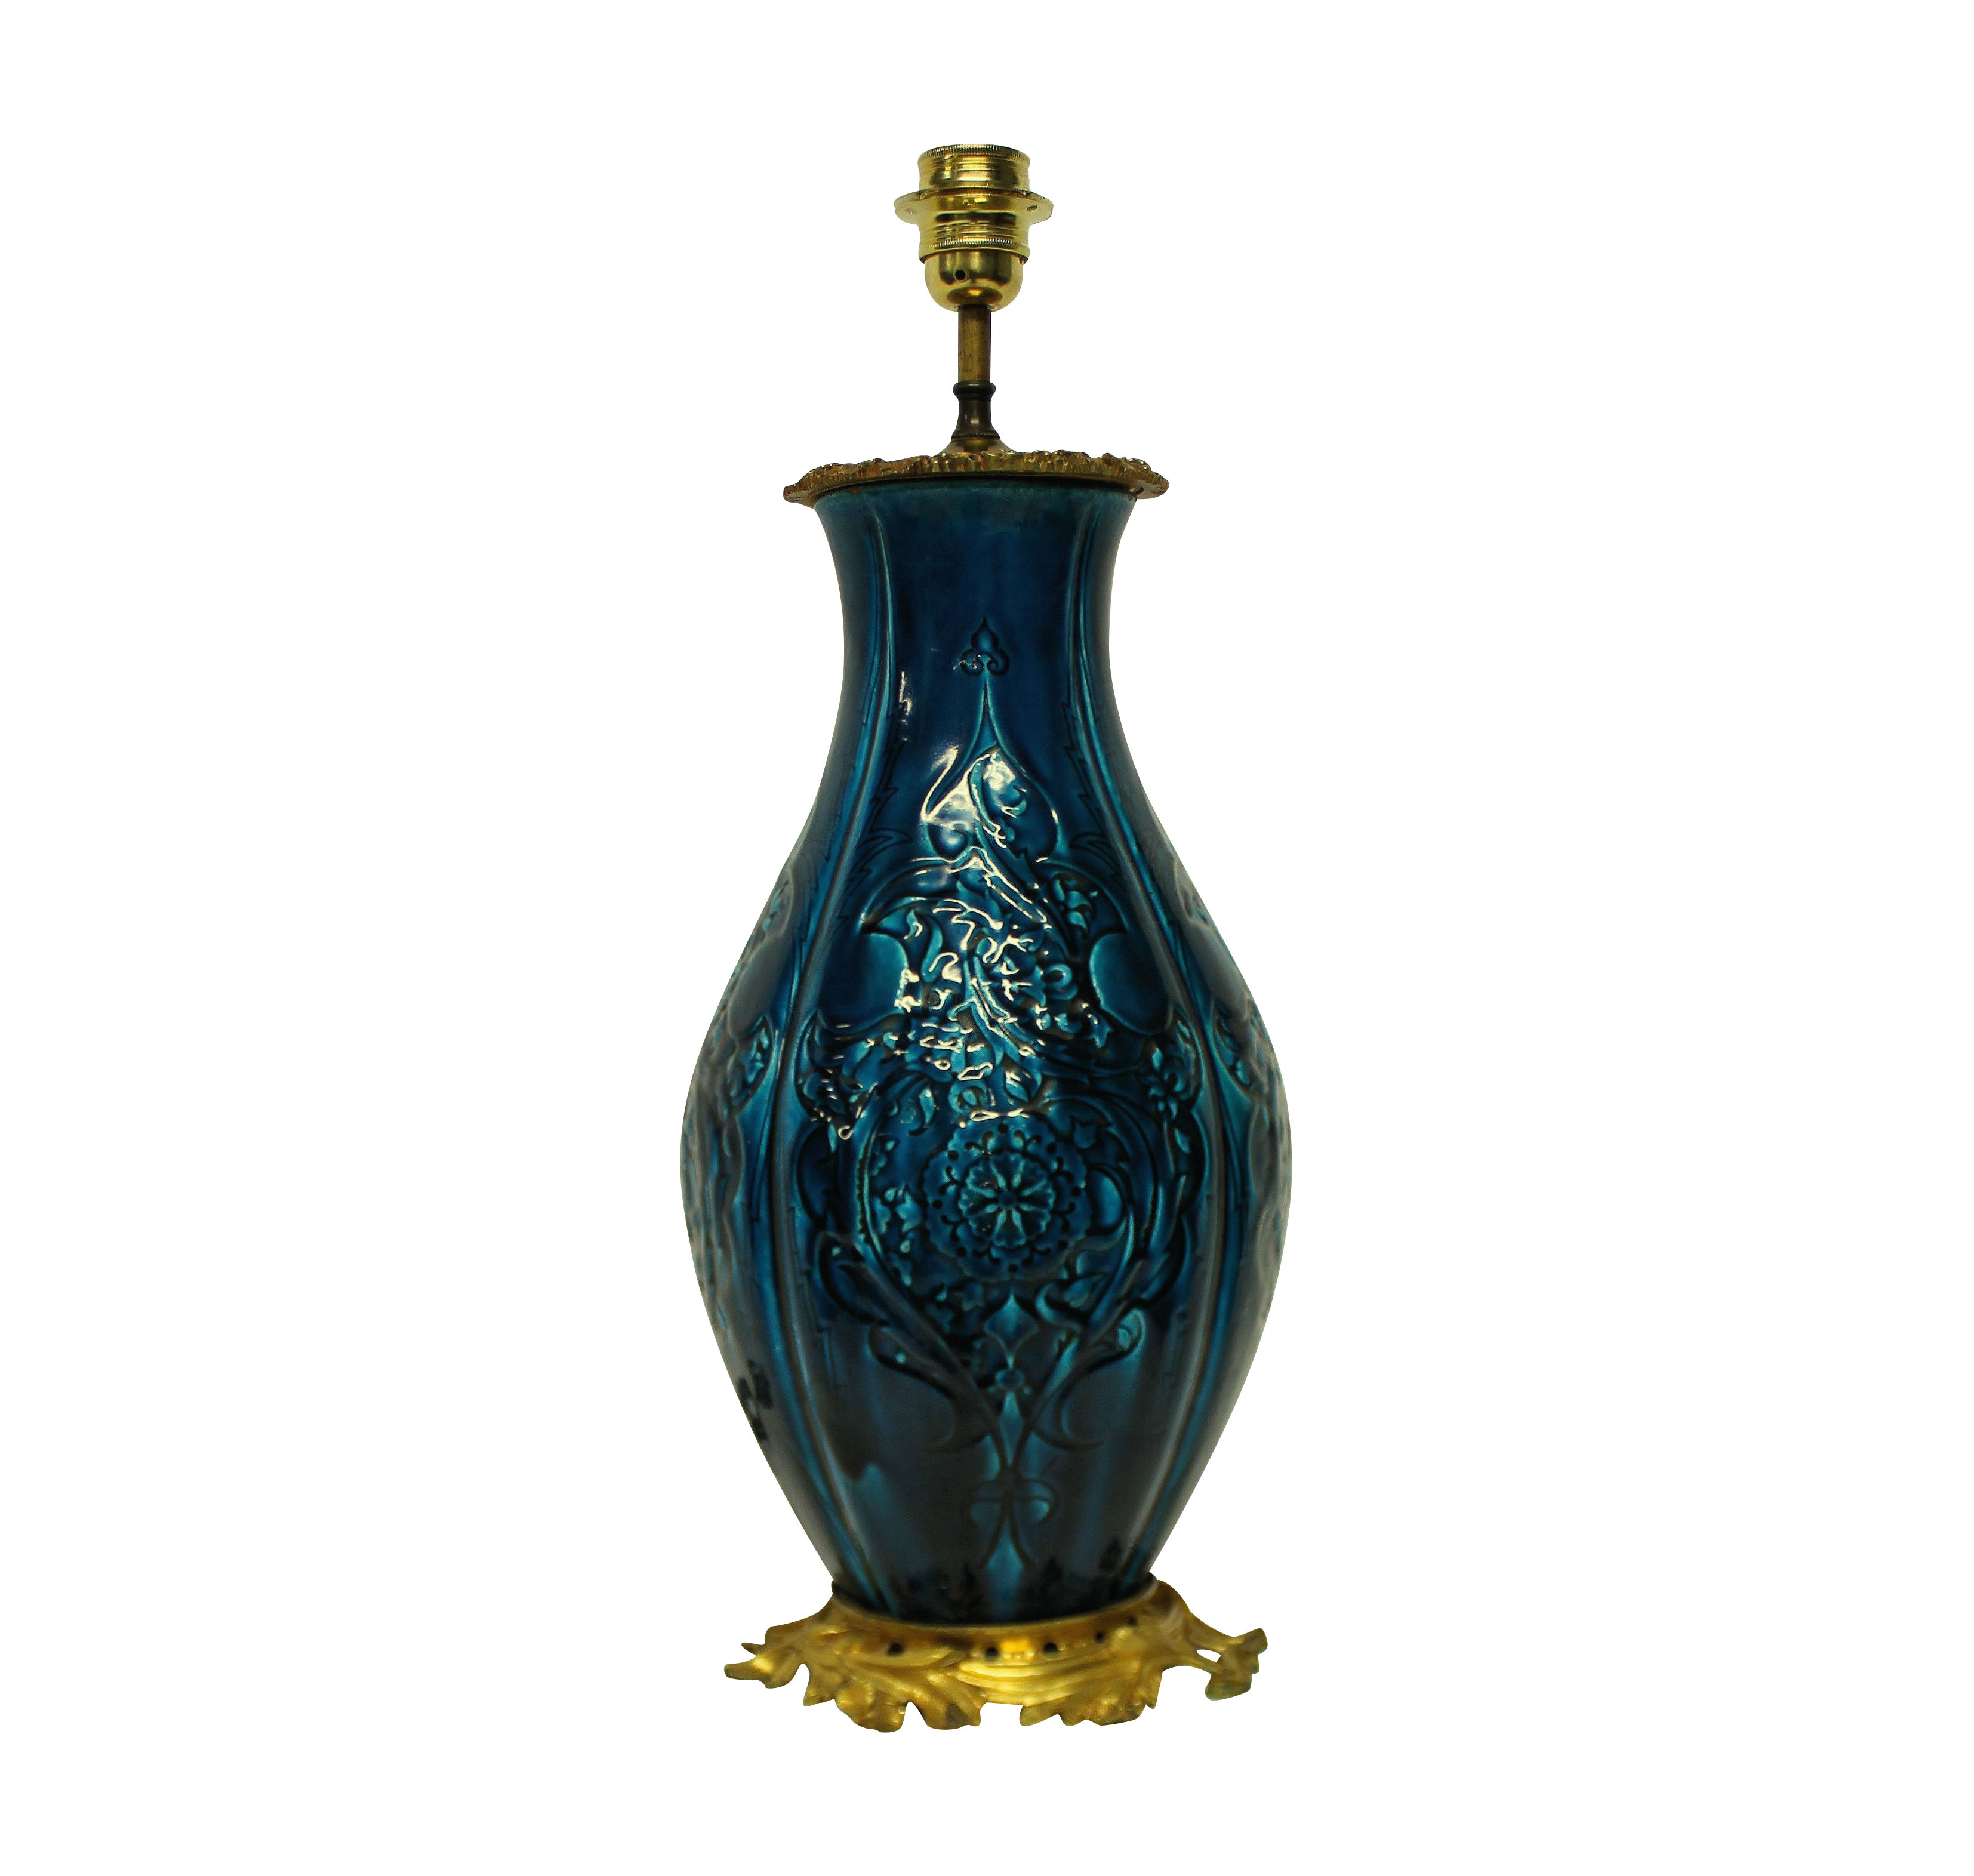 A CHINESE VASE LAMP ON AN ORMOLU BASE